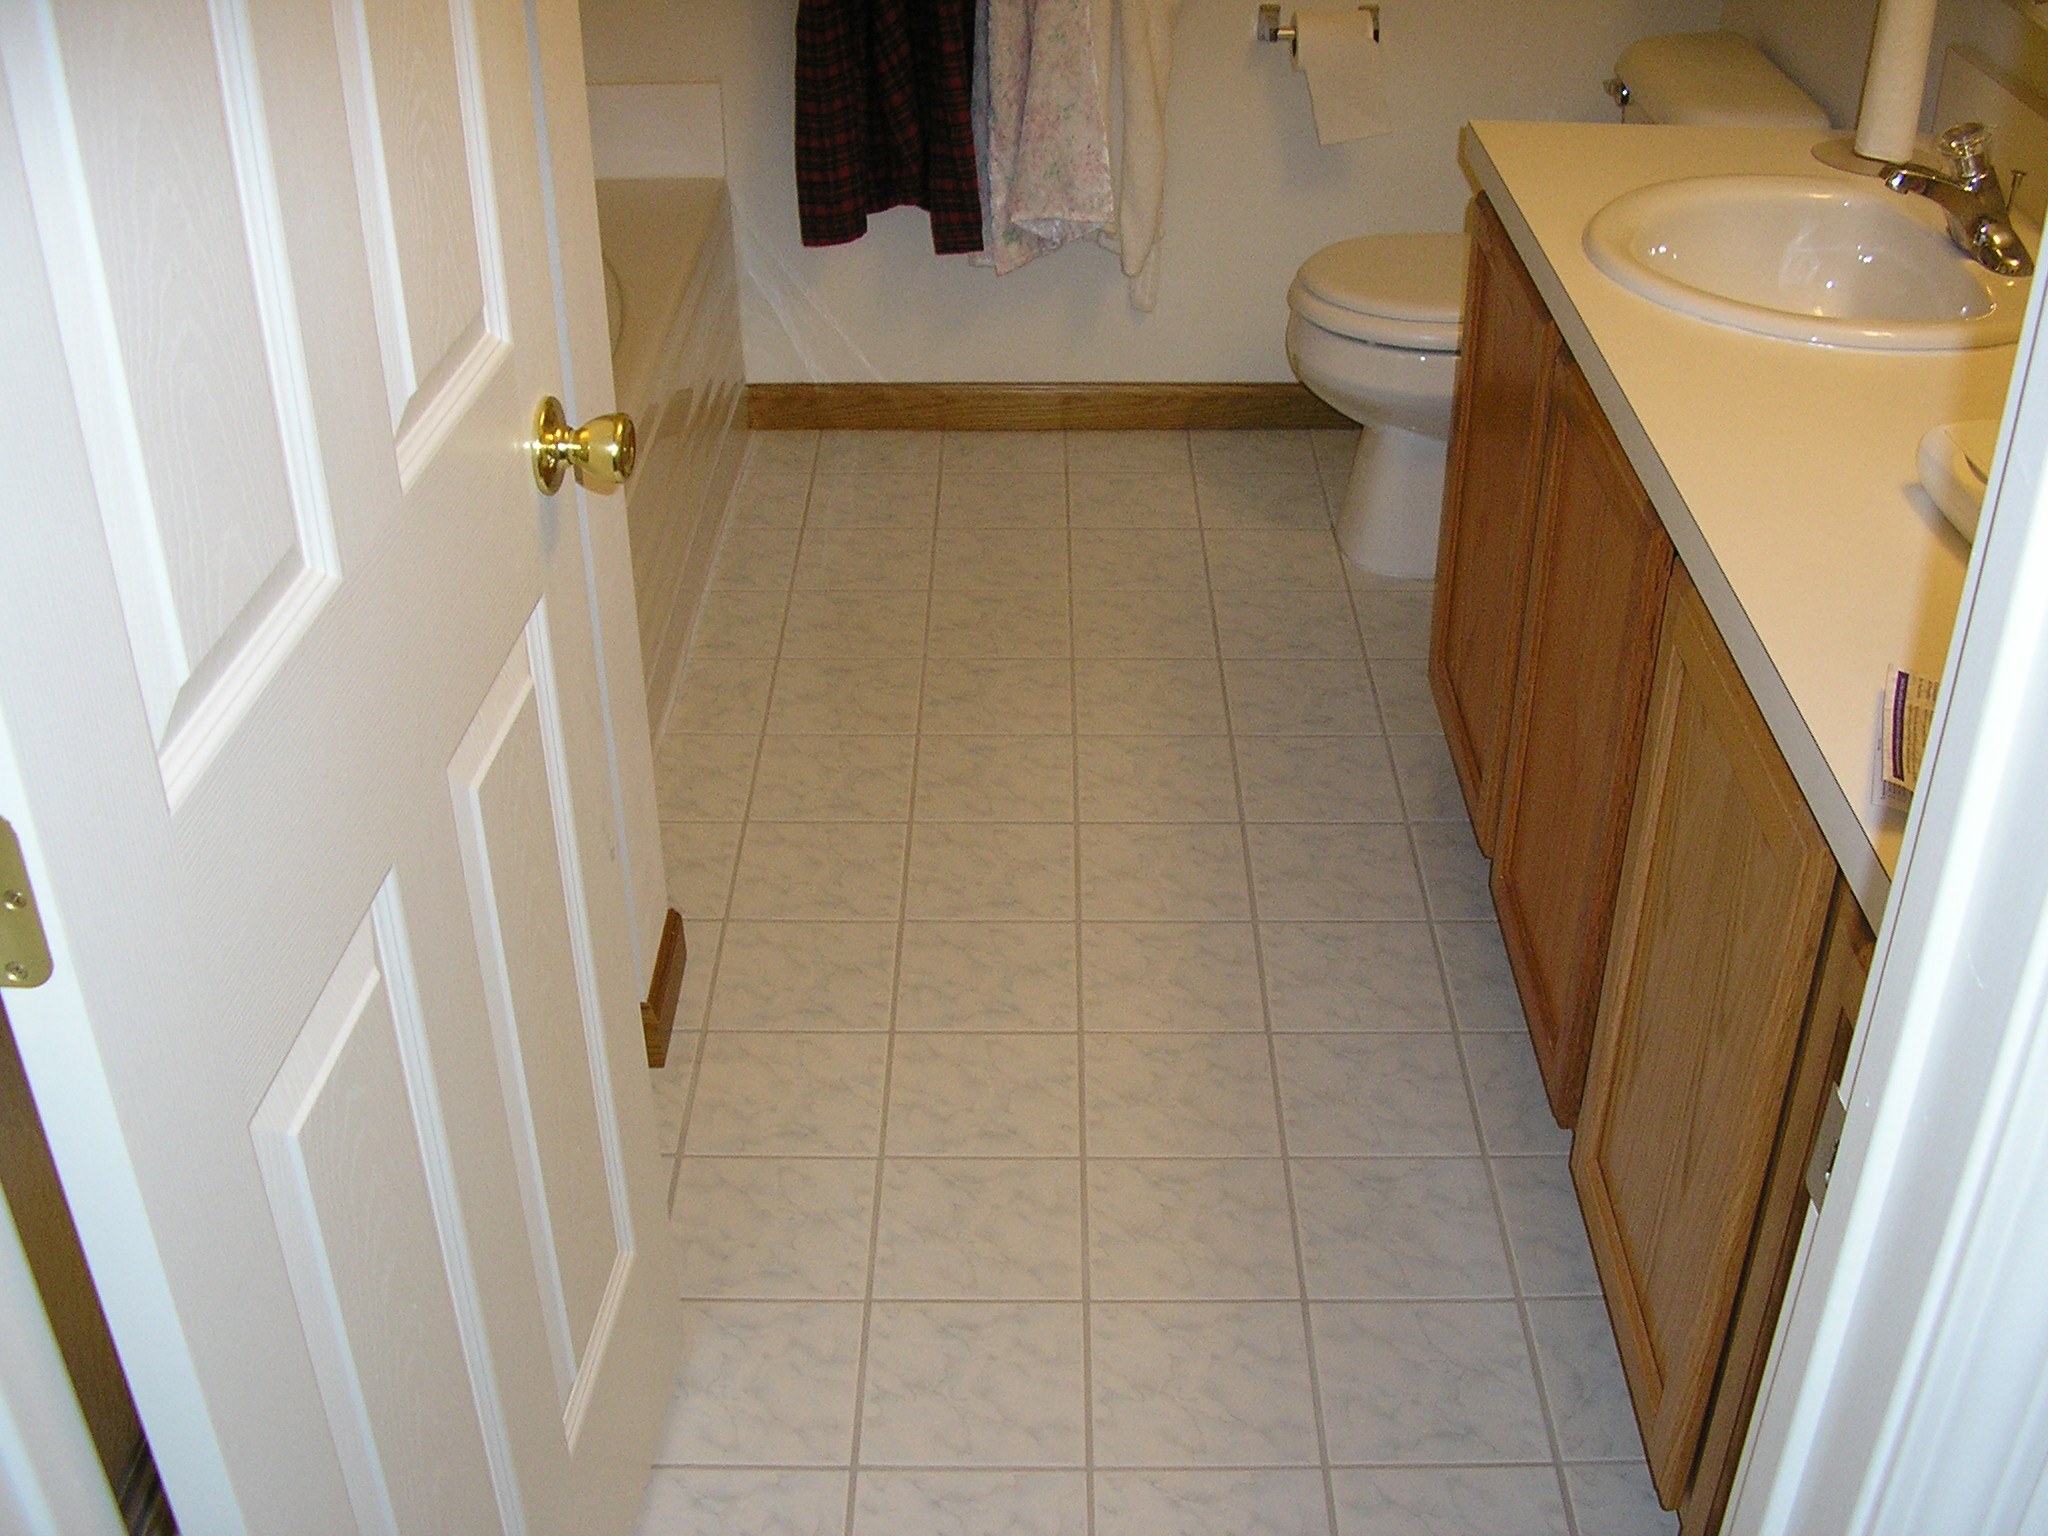 Bathroom Remodeling Lehigh Valley Pa : Jcf remodeling your remodeler of the lehigh valley